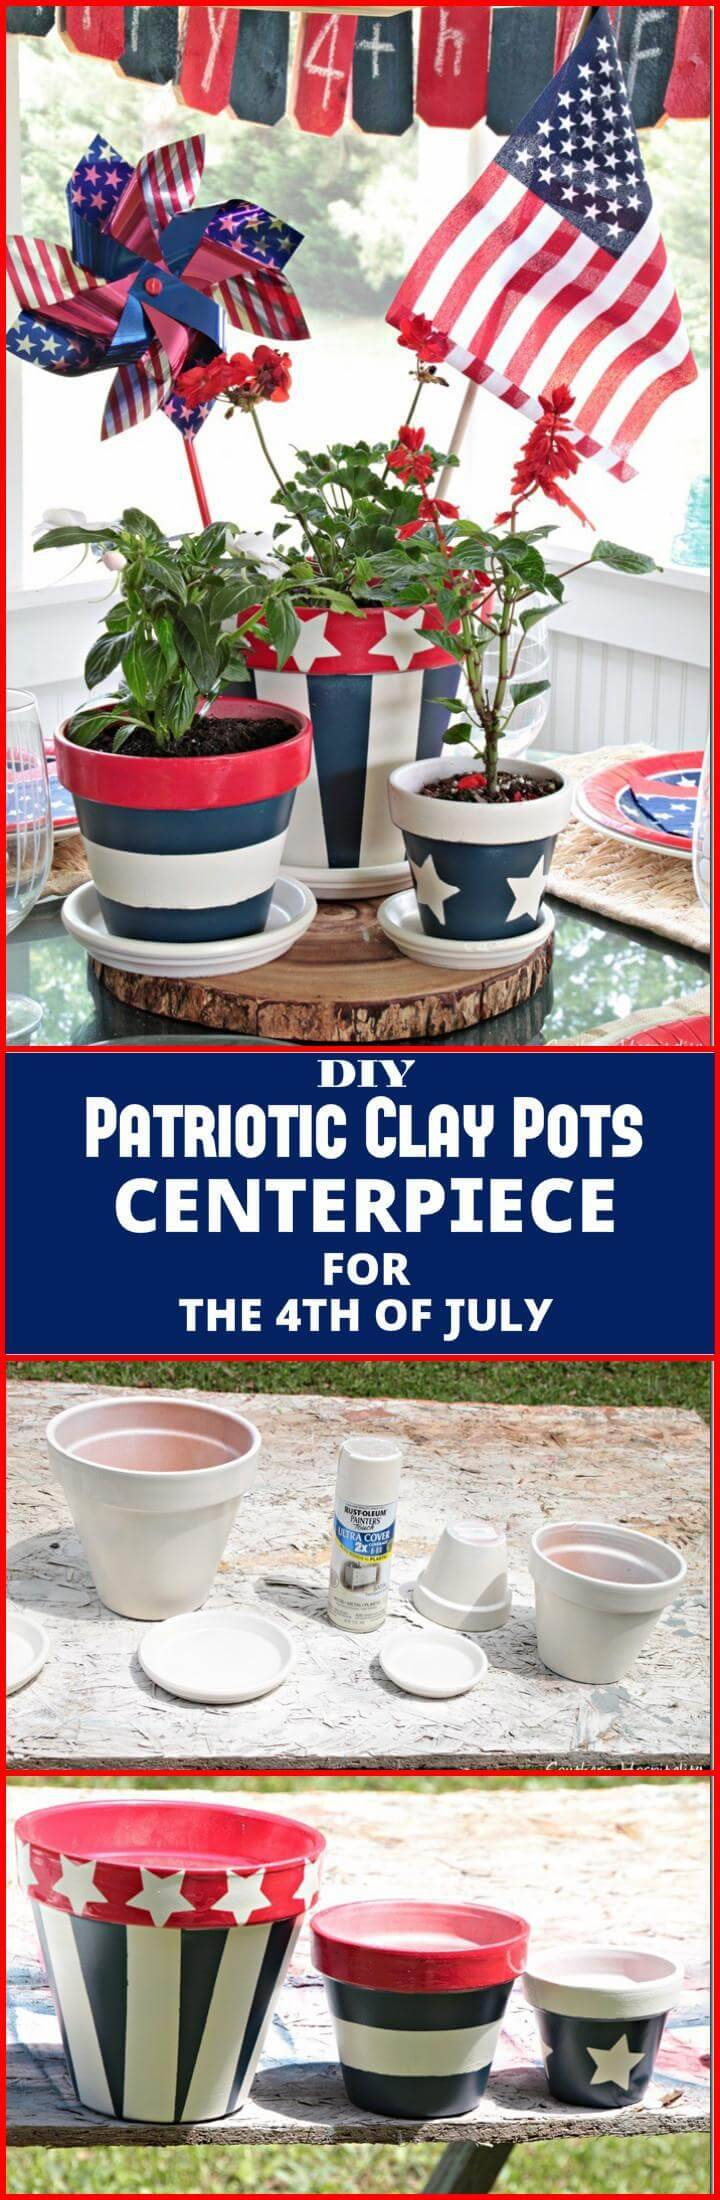 handmade patriotic clay pots centerpiece for 4th July